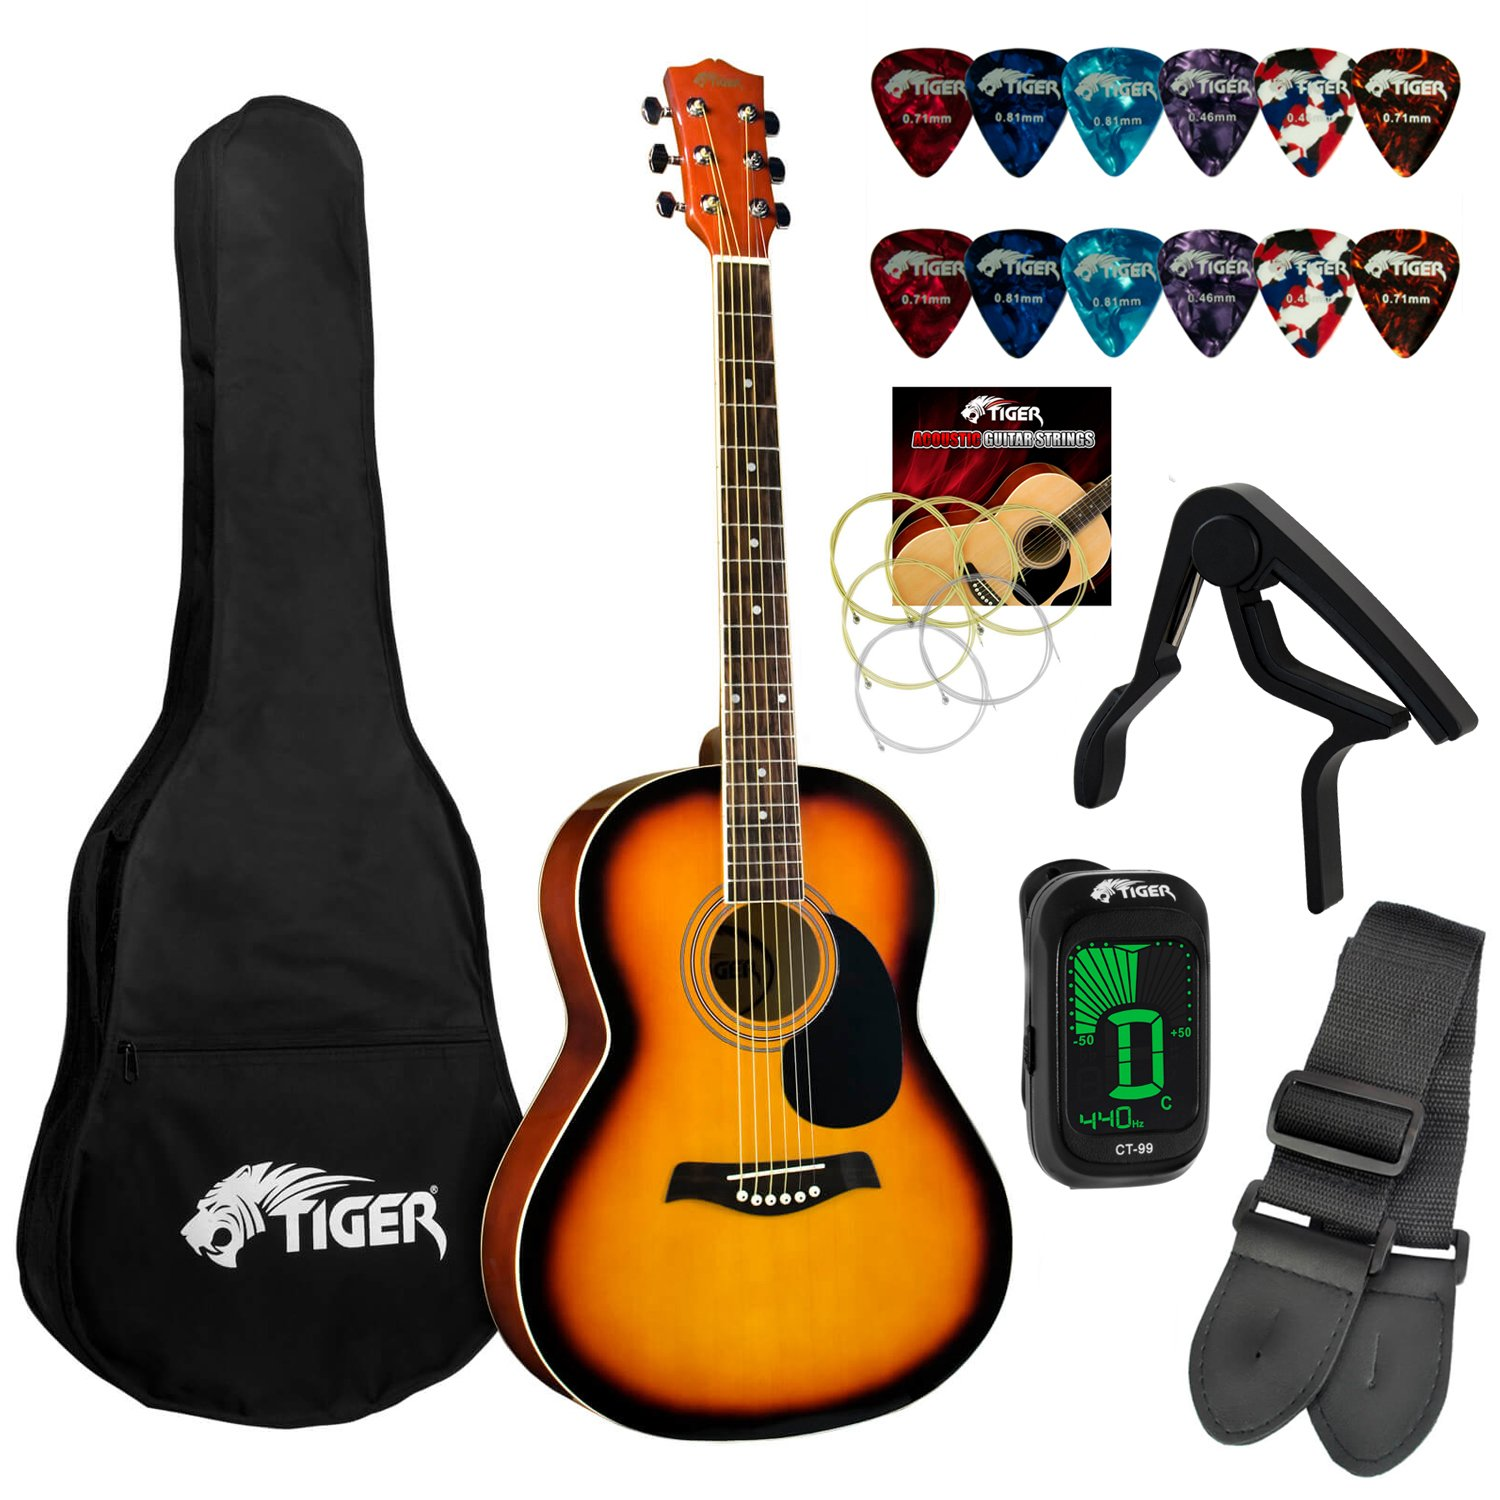 Tiger Beginners Acoustic Guitar Package - Sunburst TIGERMUSIC AZK-ACG2-SB-K